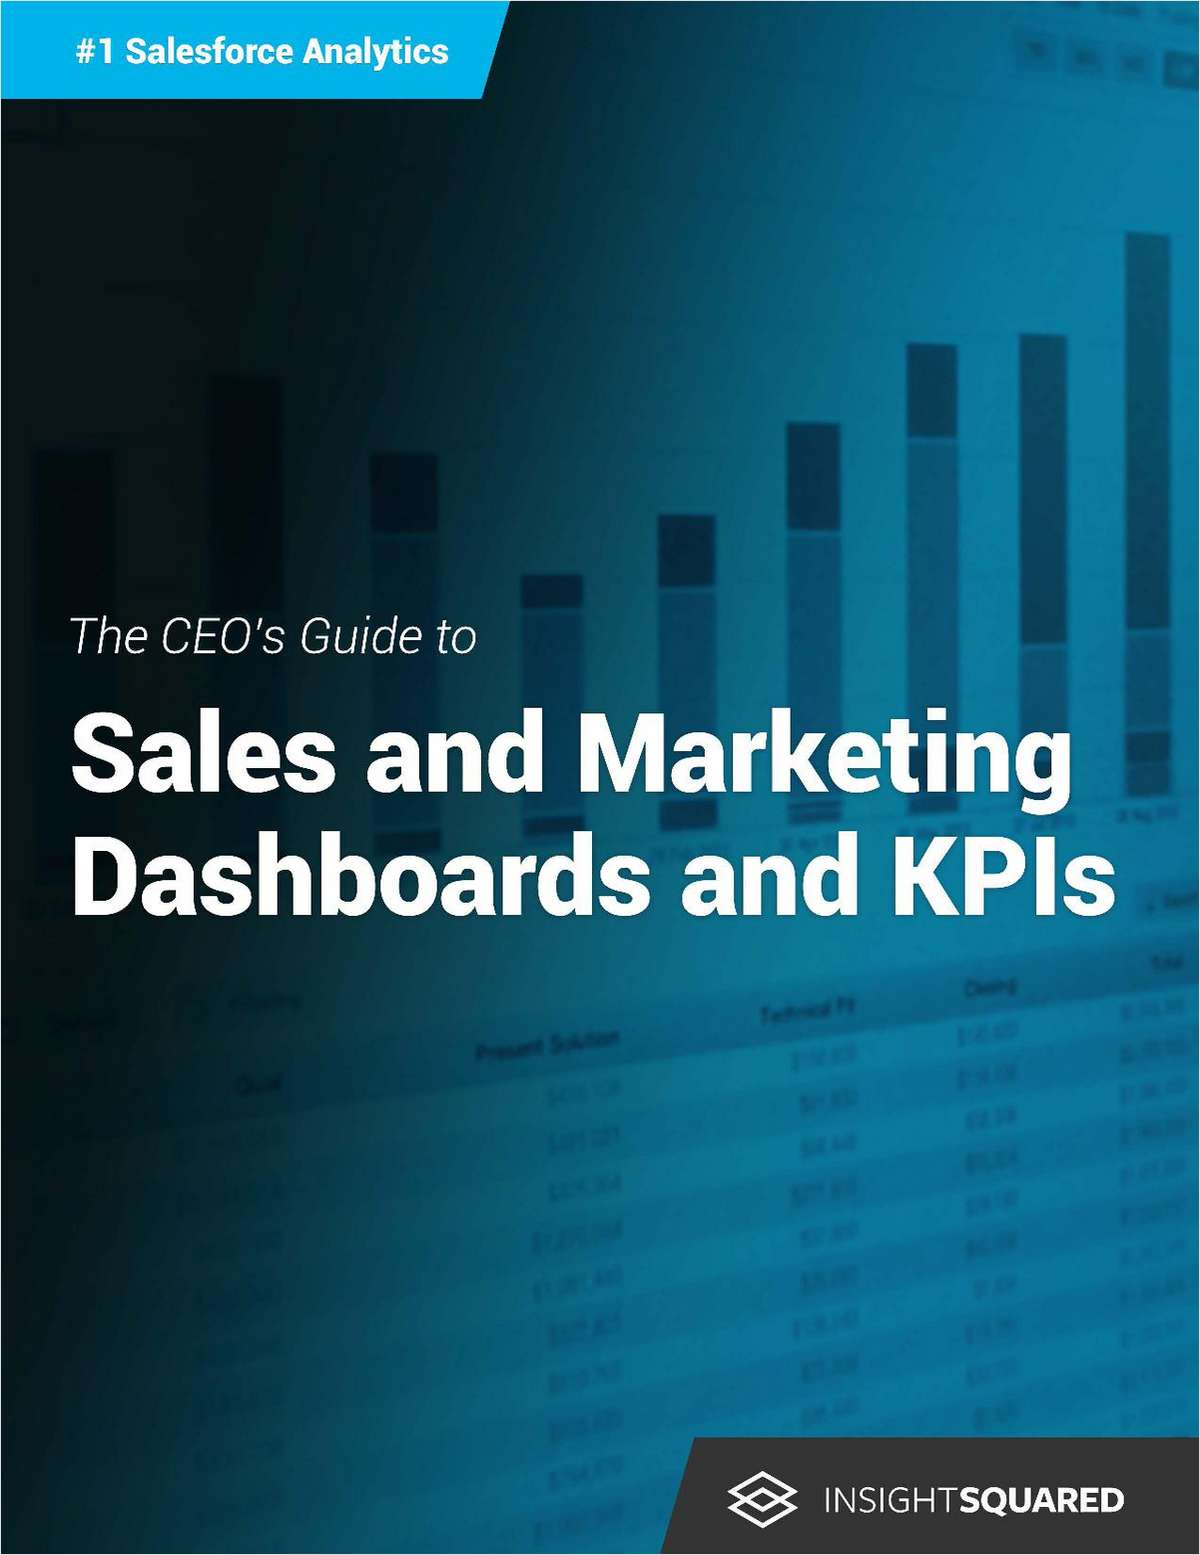 The CEO's Guide to Sales and Marketing KPIs